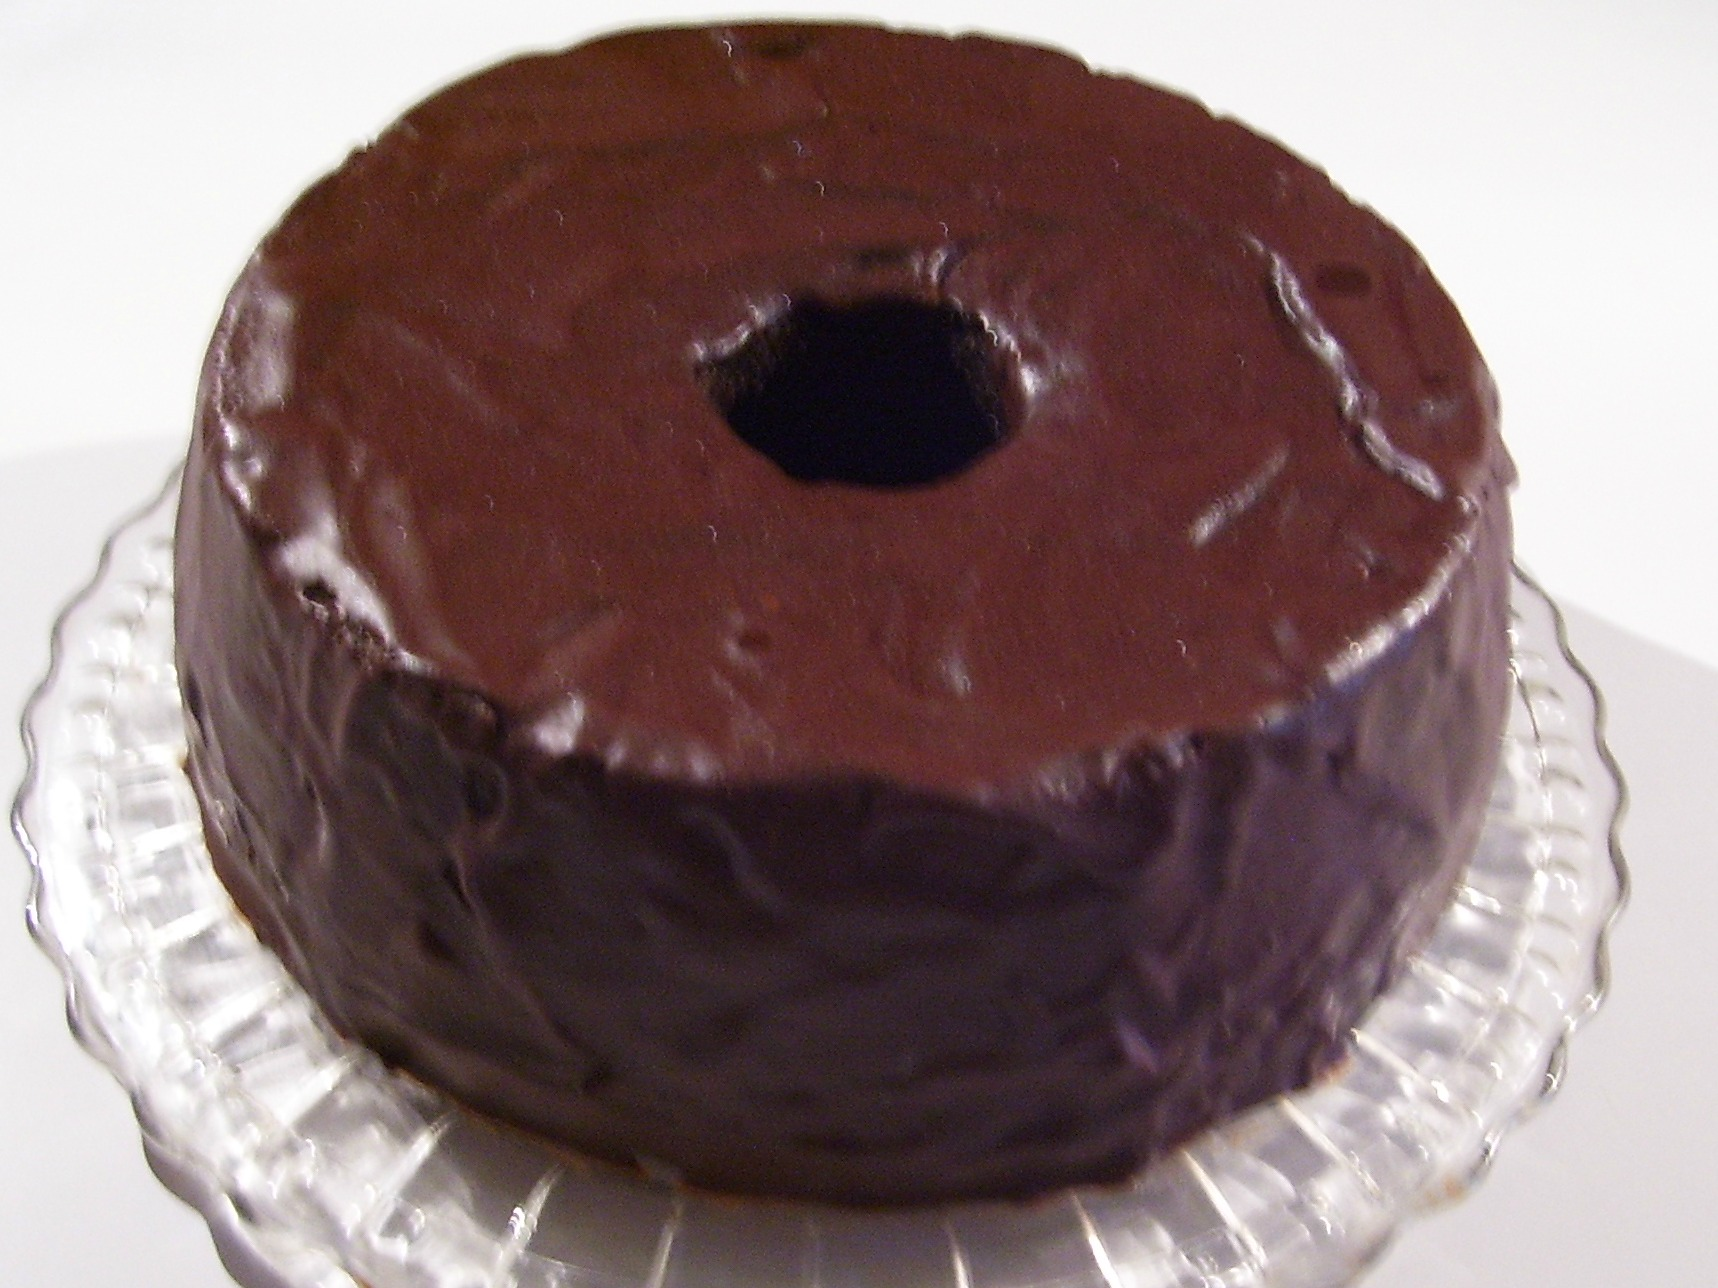 Grandma's Old Fashioned Chocolate Pound Cake is a chocoholic's dream... rich with Dutch Cocoa and Chocolate Frosting.